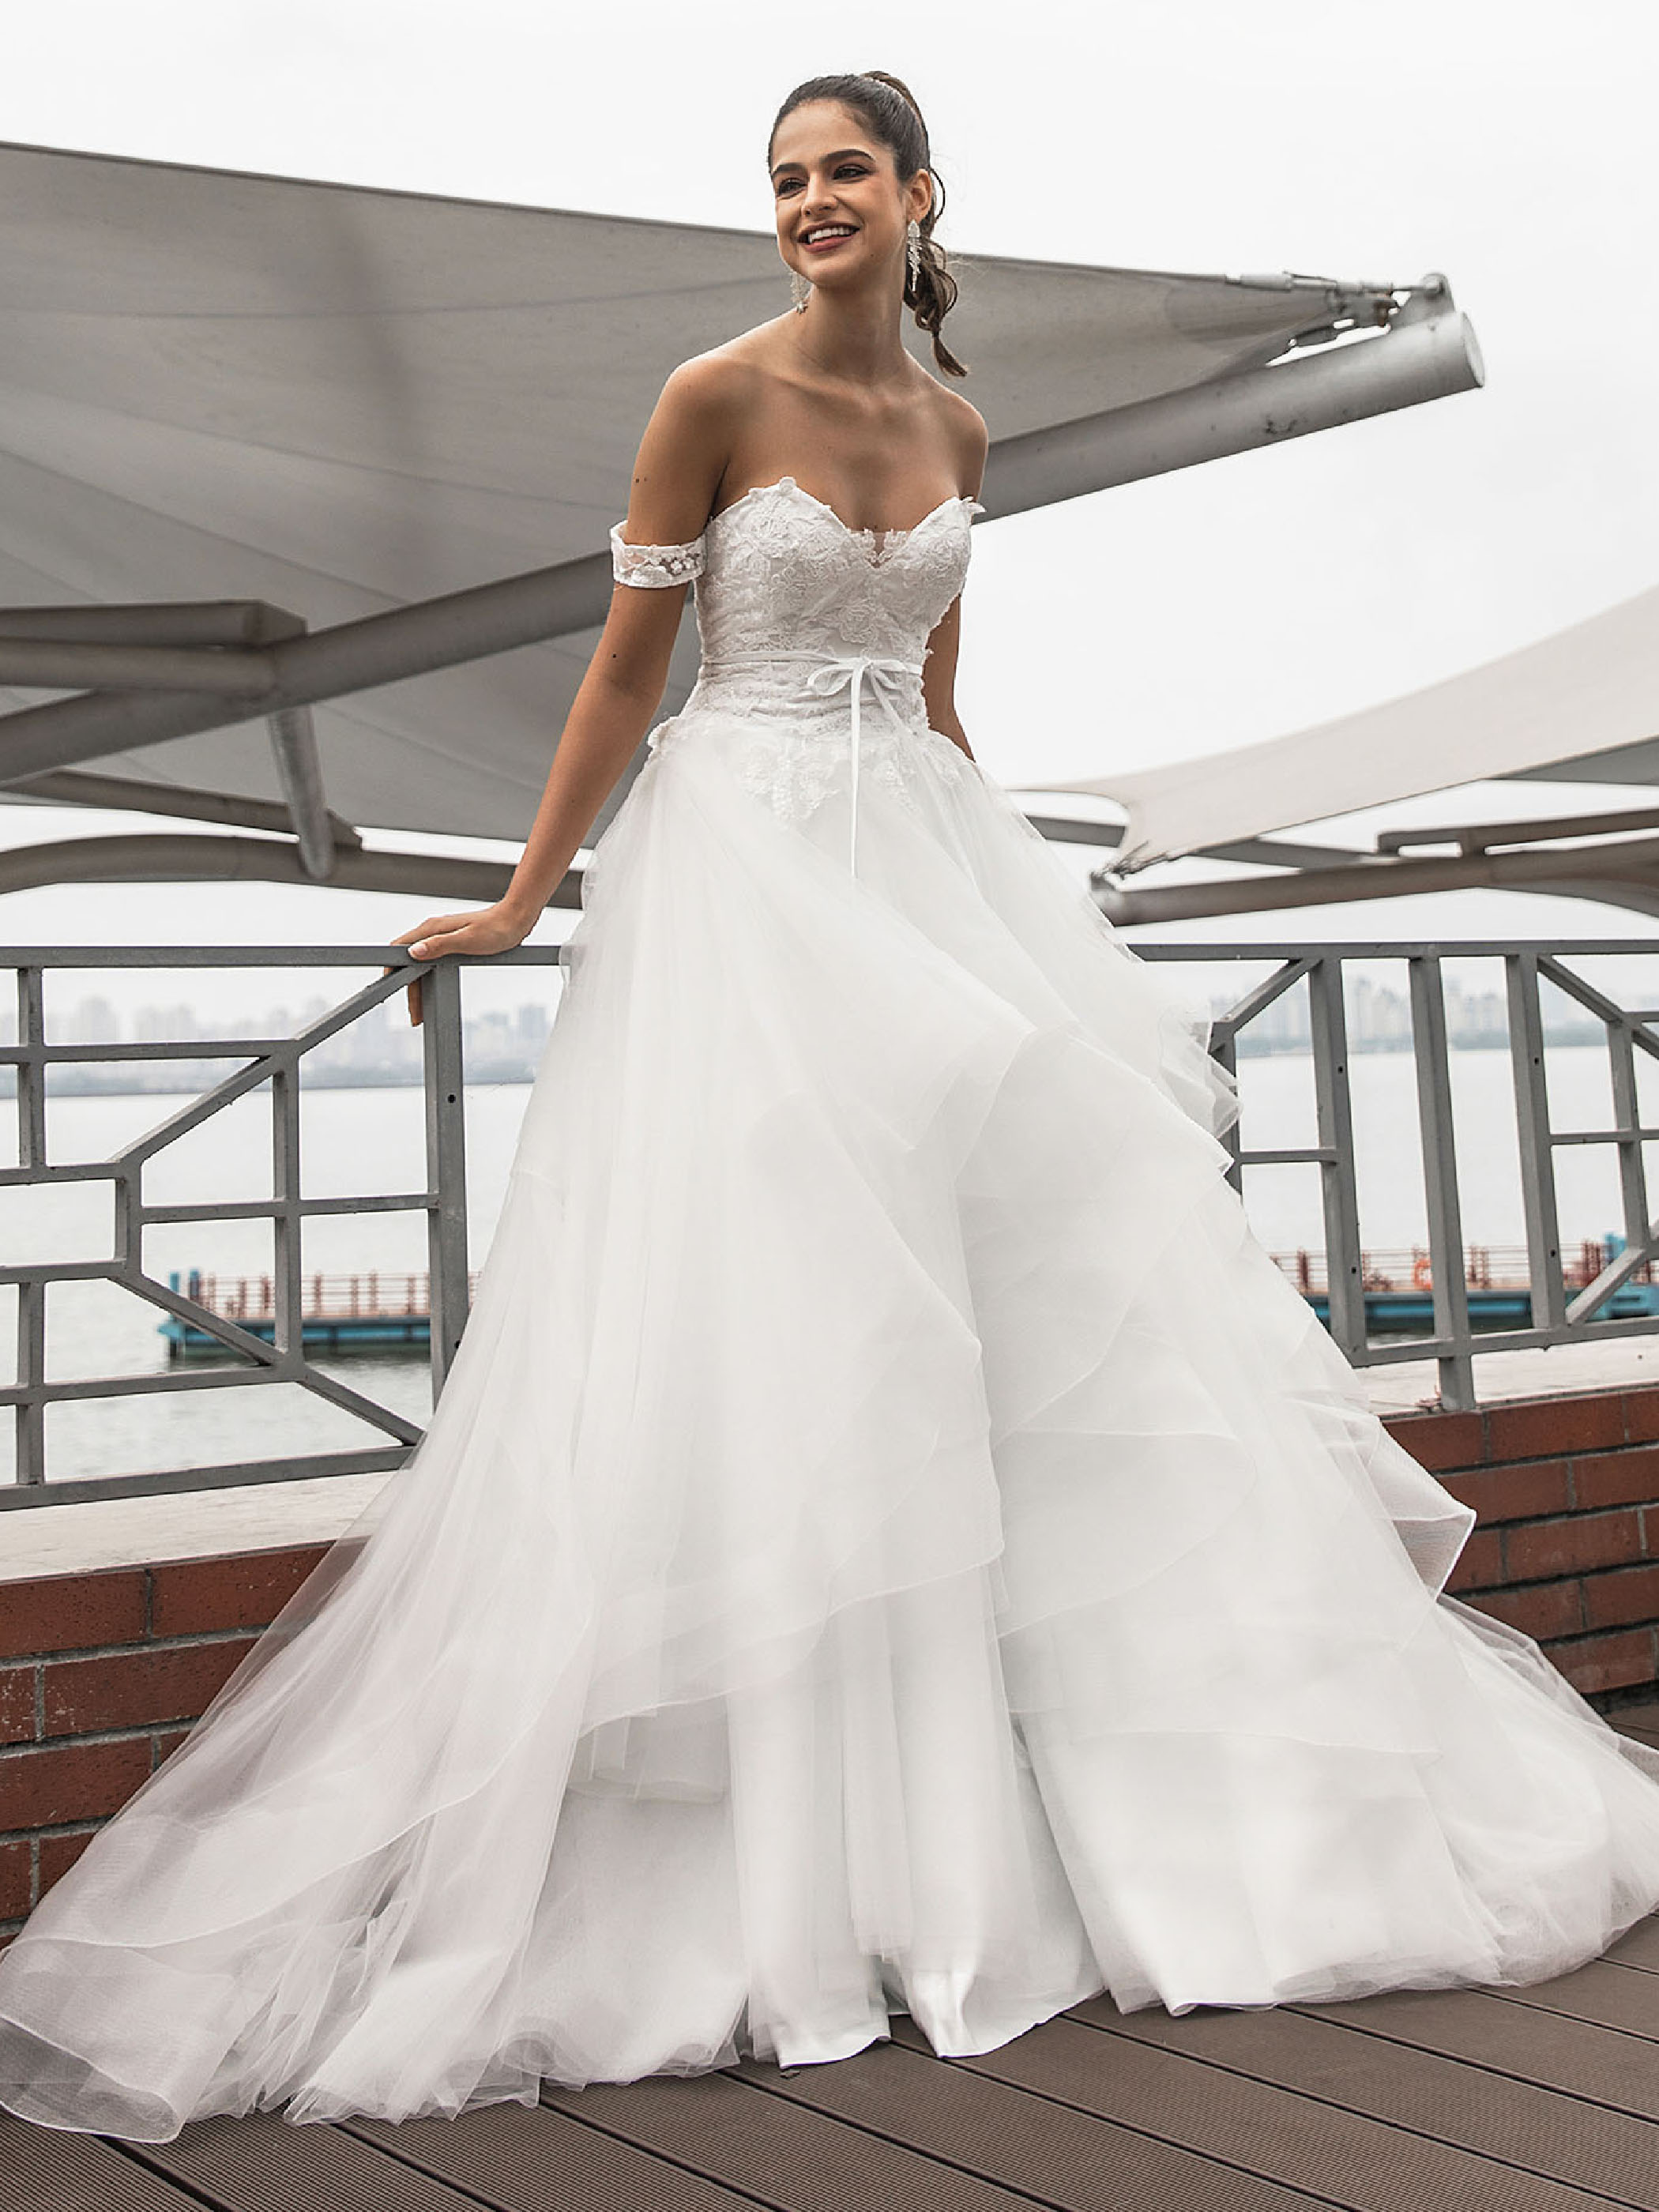 Dressv Elegant Wedding Dress Off The Shoulder With Sweep Train Ball Gown Sleeveless Appliques Outdoor&church Wedding Dresses